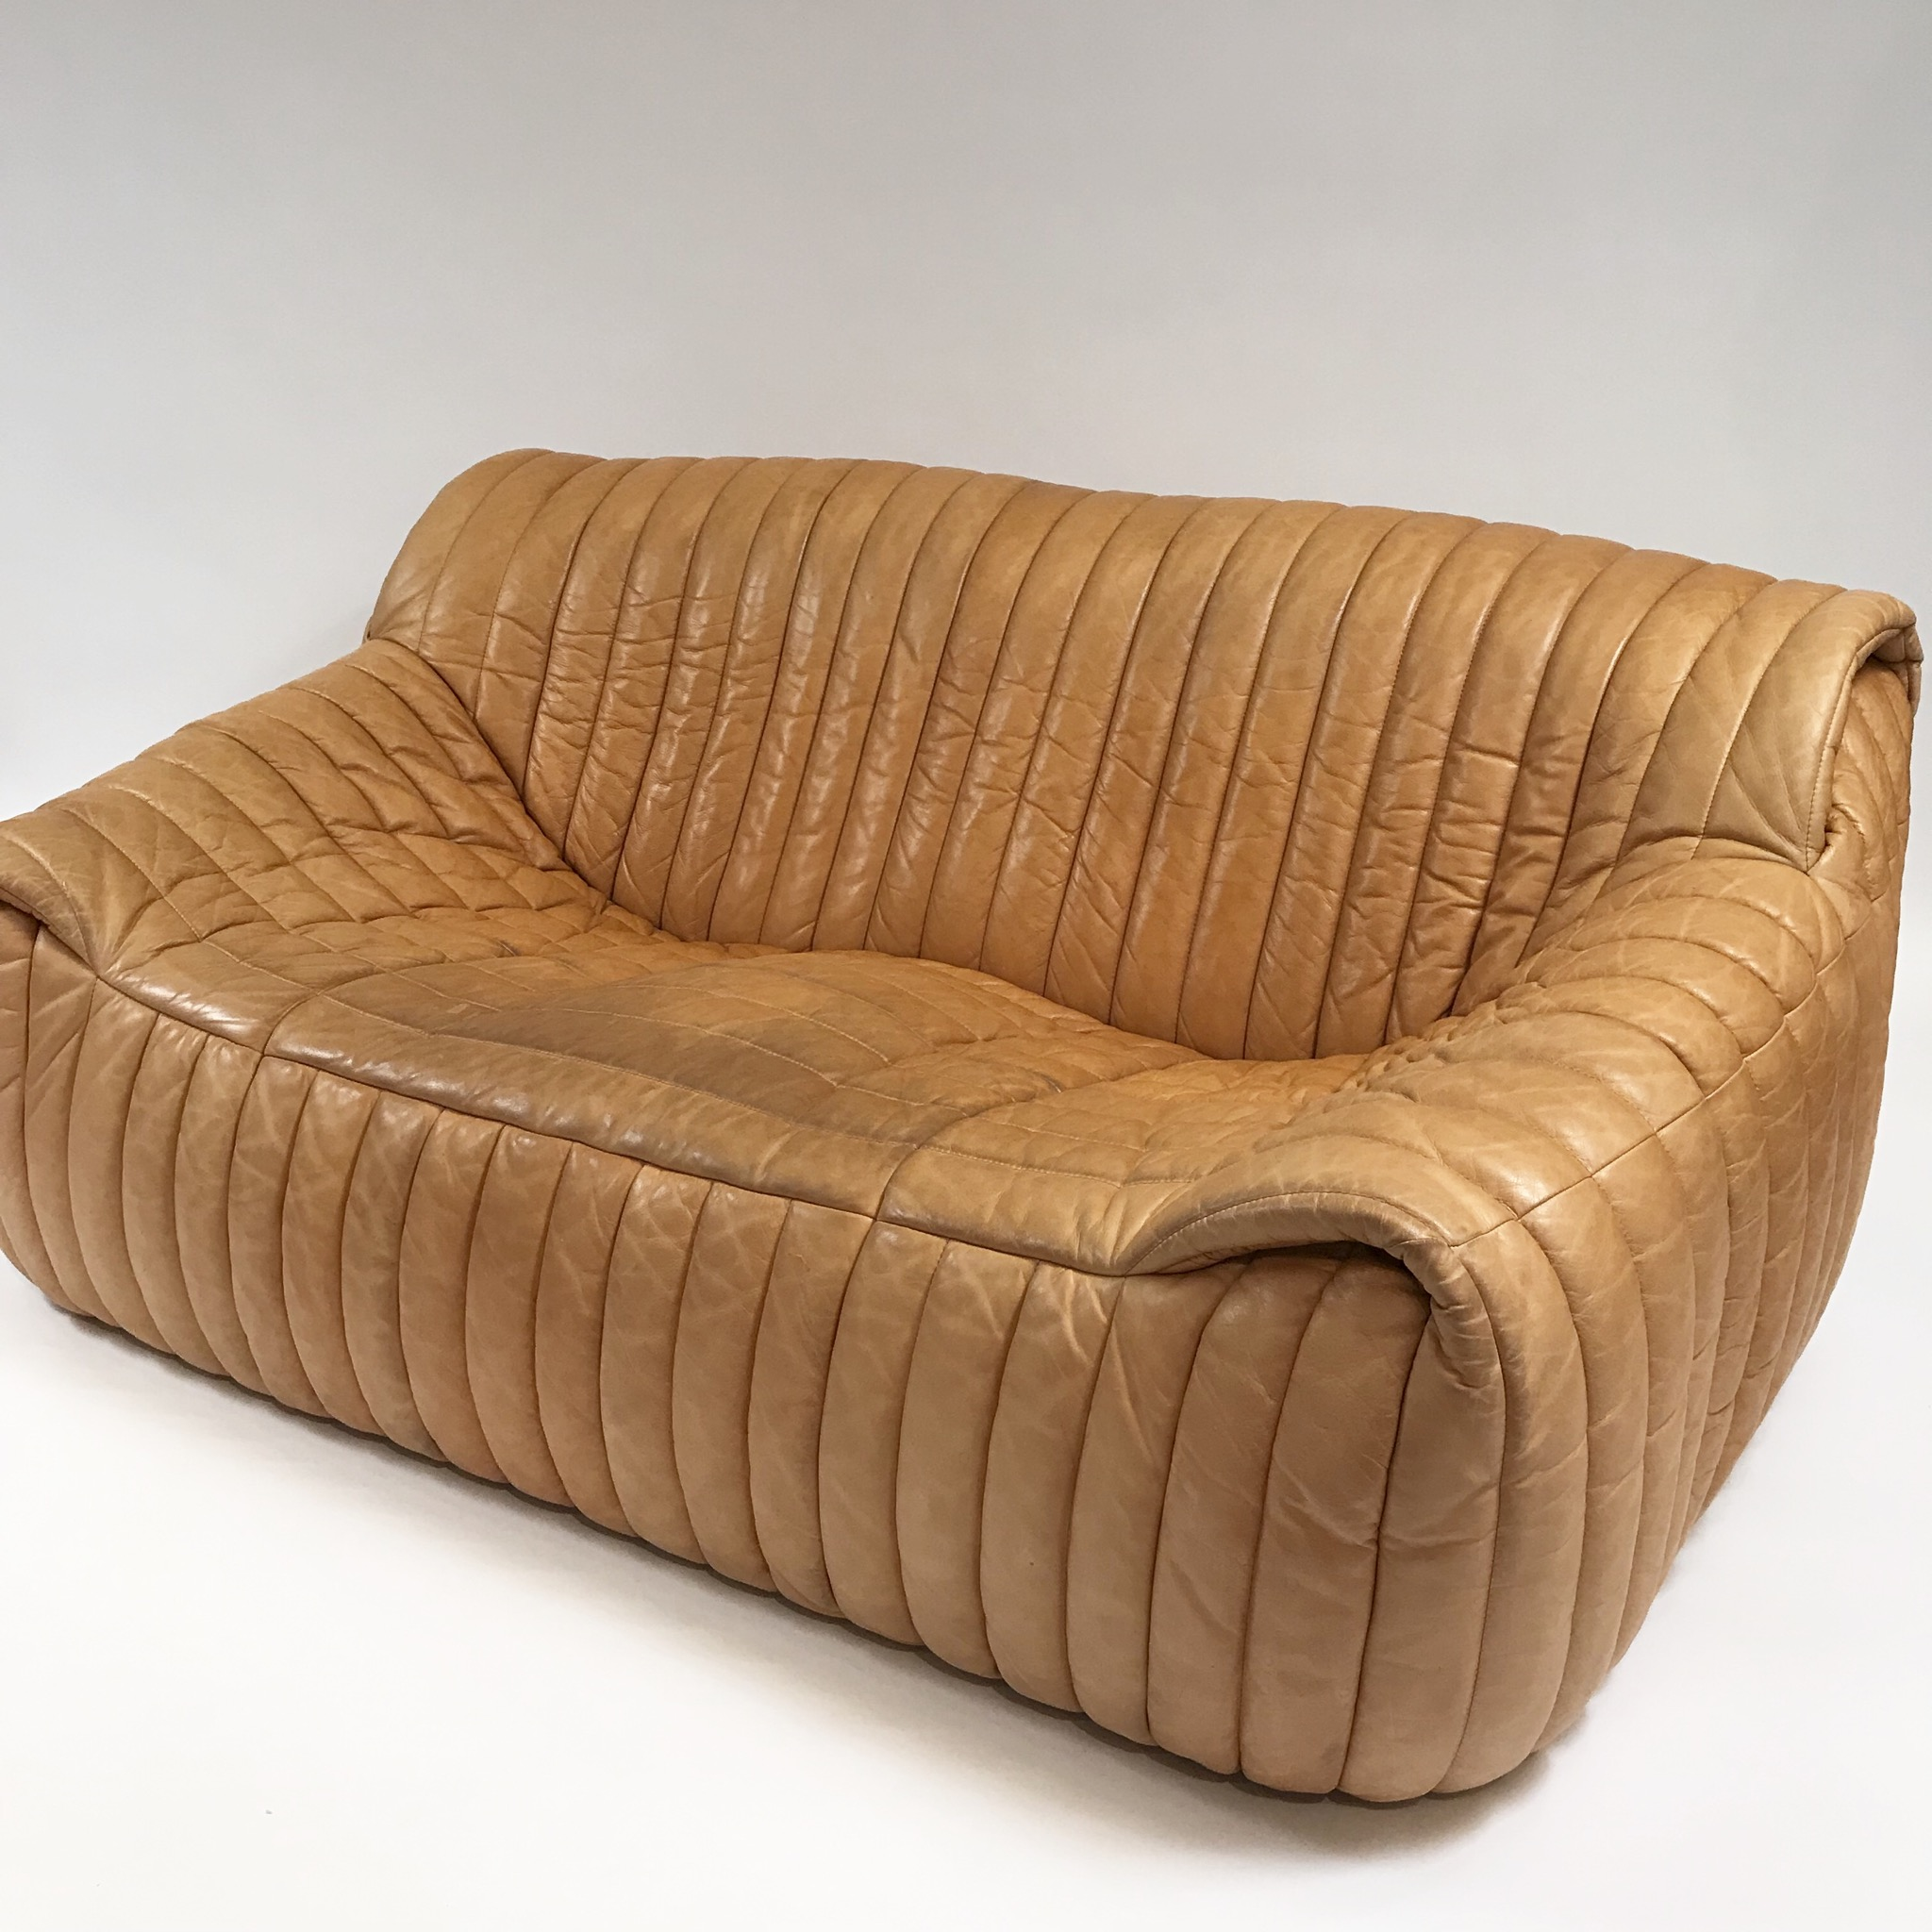 Canapé Cuir Cinna Cinna Leather Sofa Circa 1970 Paul Bert Serpette